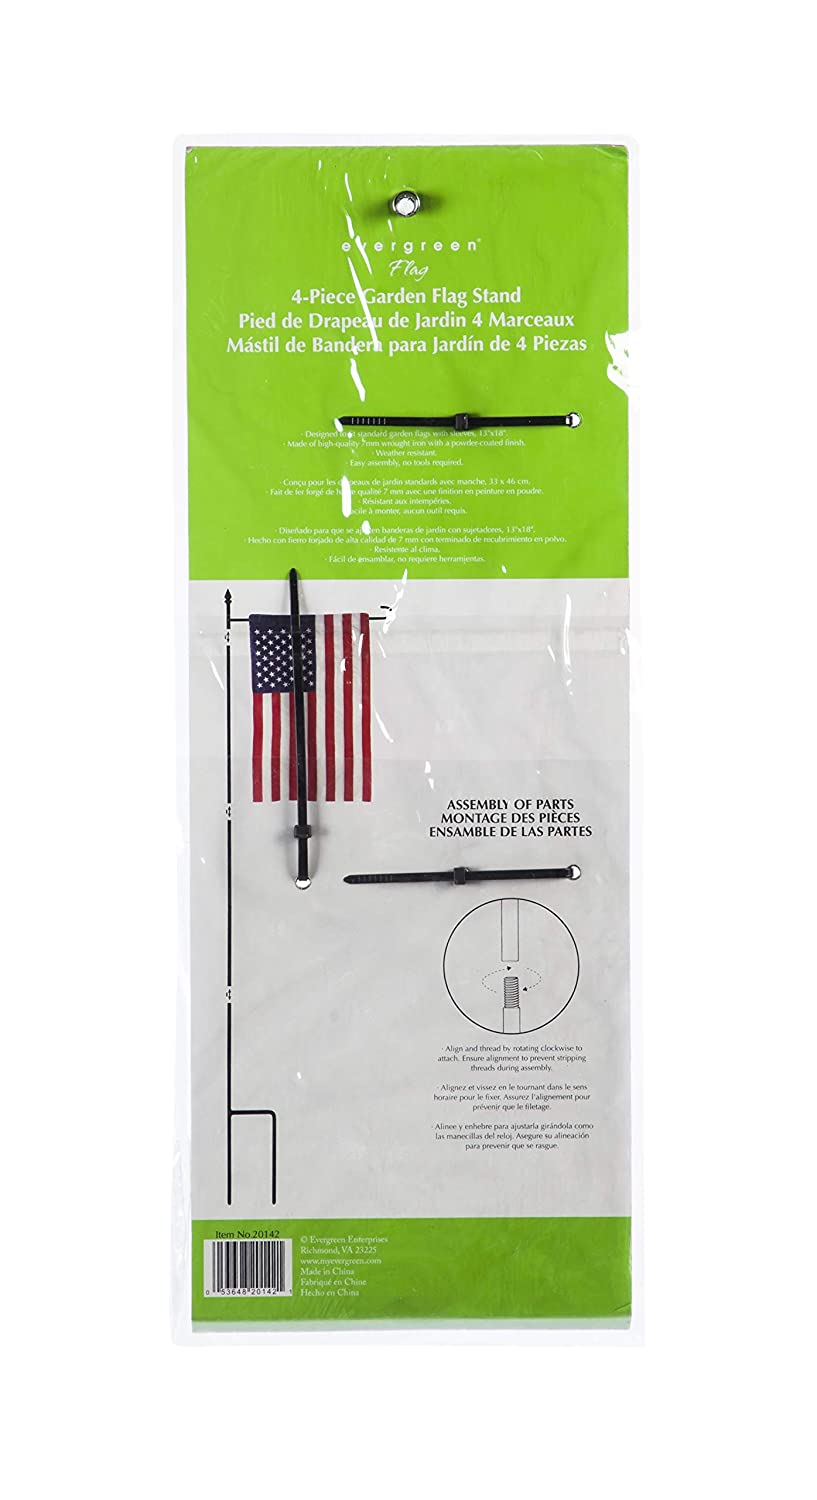 Amazon.com : Evergreen Flag 20142 4 Piece Full Size Black Garden Flag Stand 44